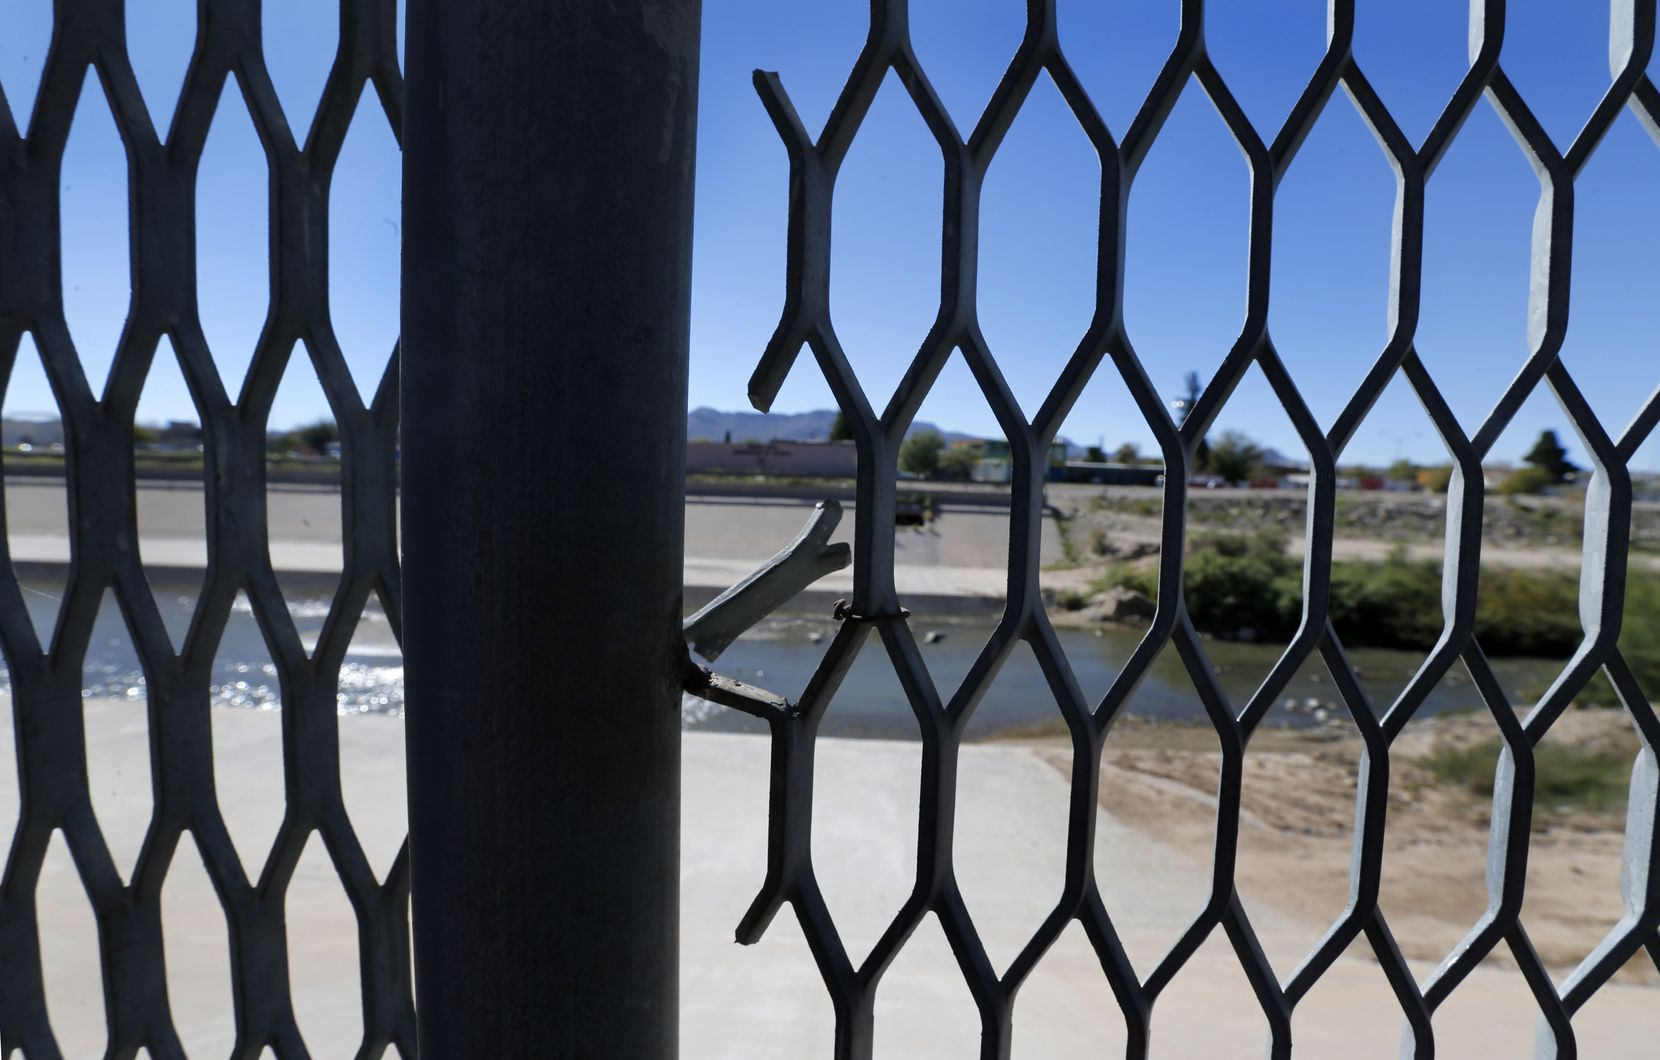 The old mesh fencing that was replaced by a new 18-ft high bollard style border wall starting near the El Paso Port of Entry and extending eastward along the Rio Grande River, seen Thursday, November 8, 2018.